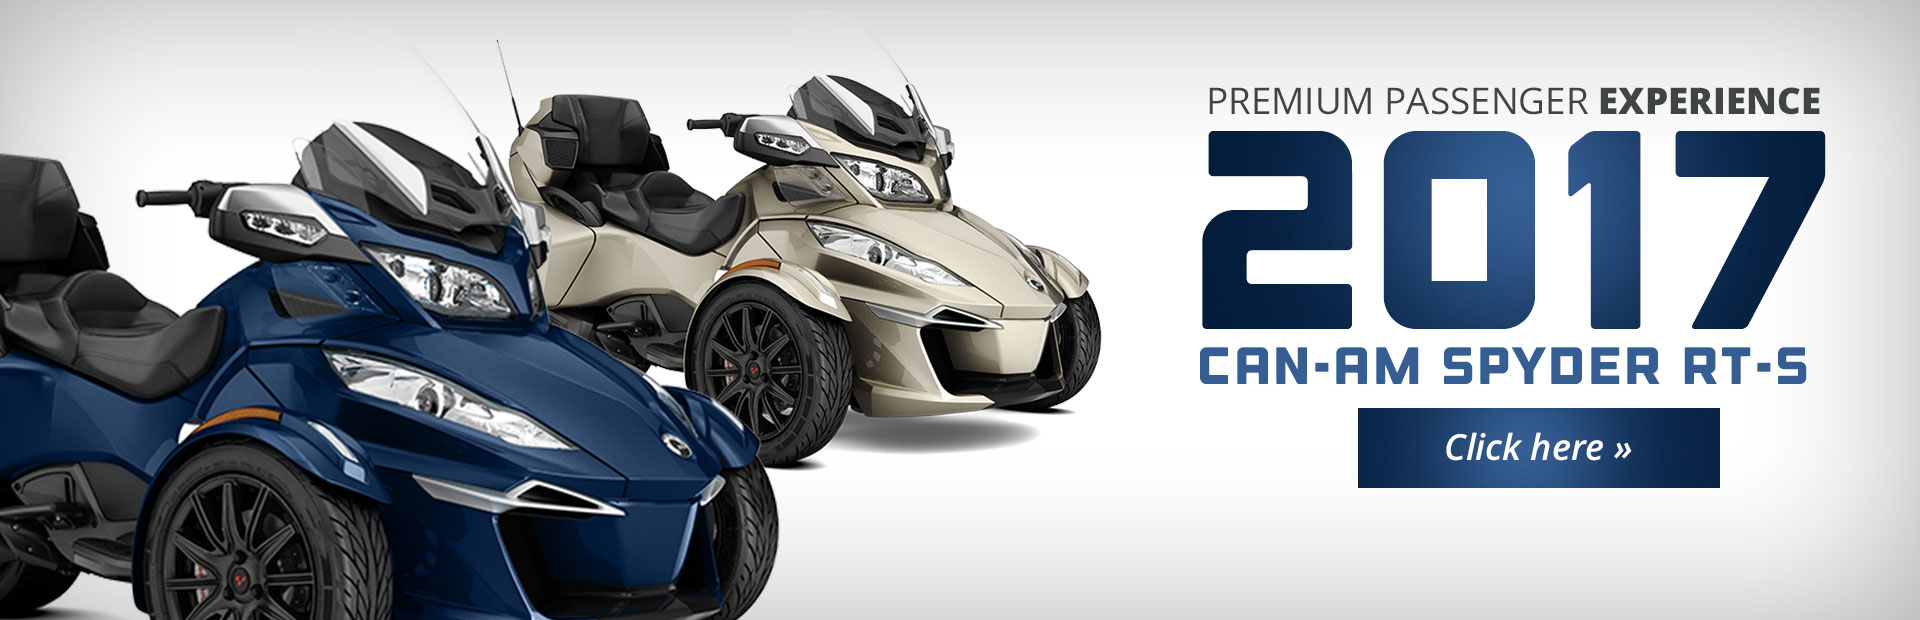 The 2017 Can-Am Spyder® RT-S offers a premium passenger experience! Click here for details.